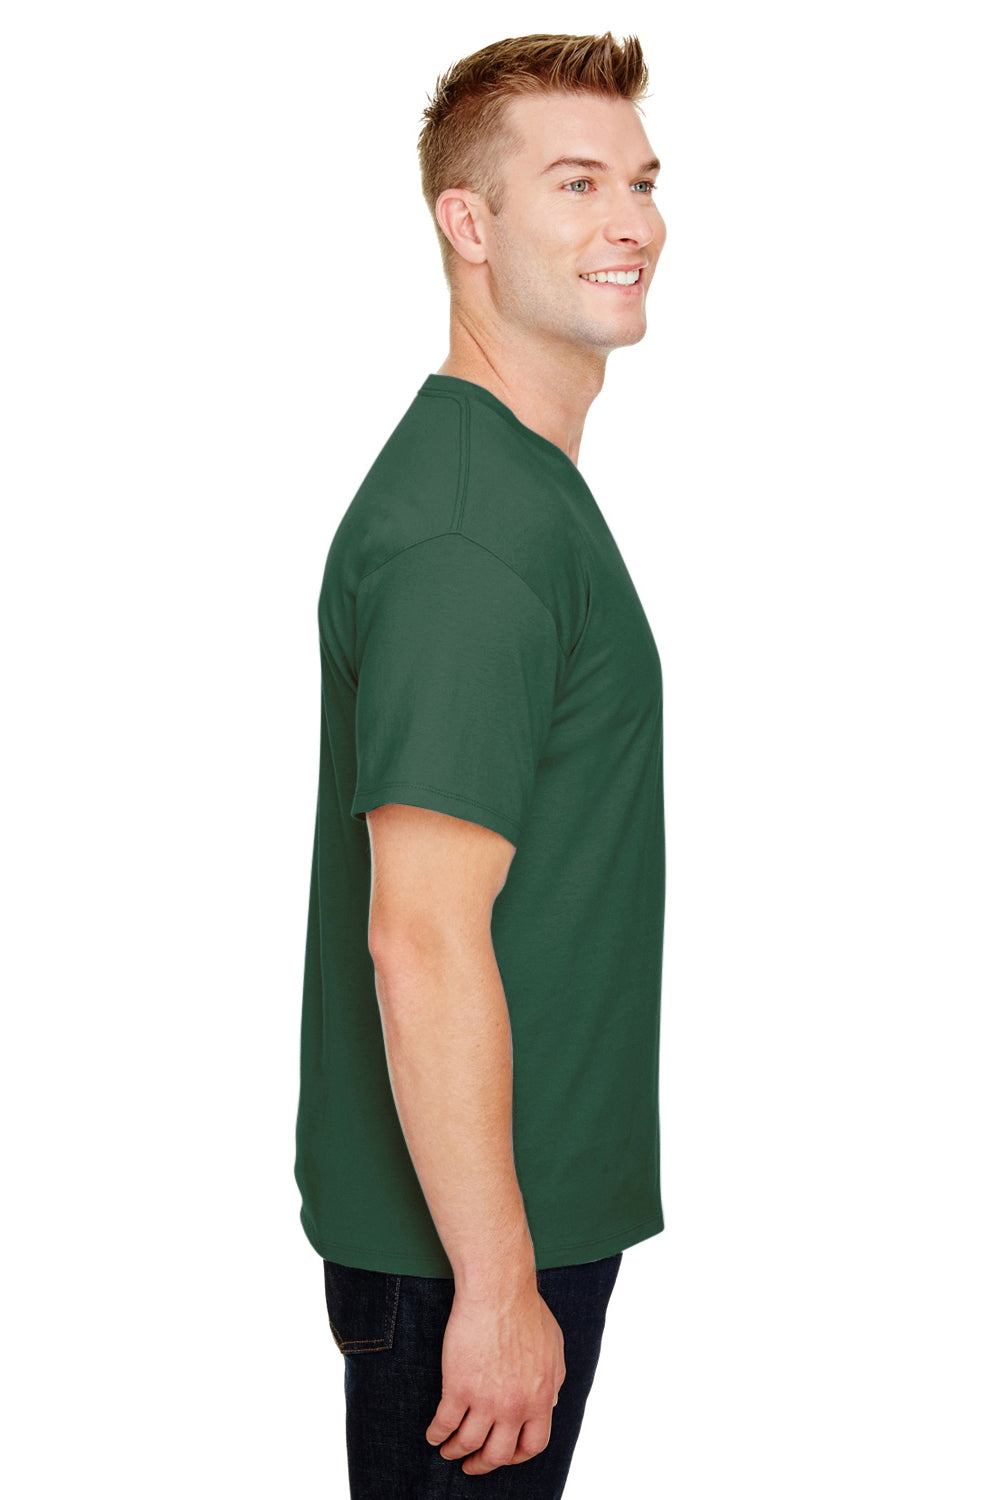 Champion CP10 Mens Short Sleeve Crewneck T-Shirt Dark Green Side